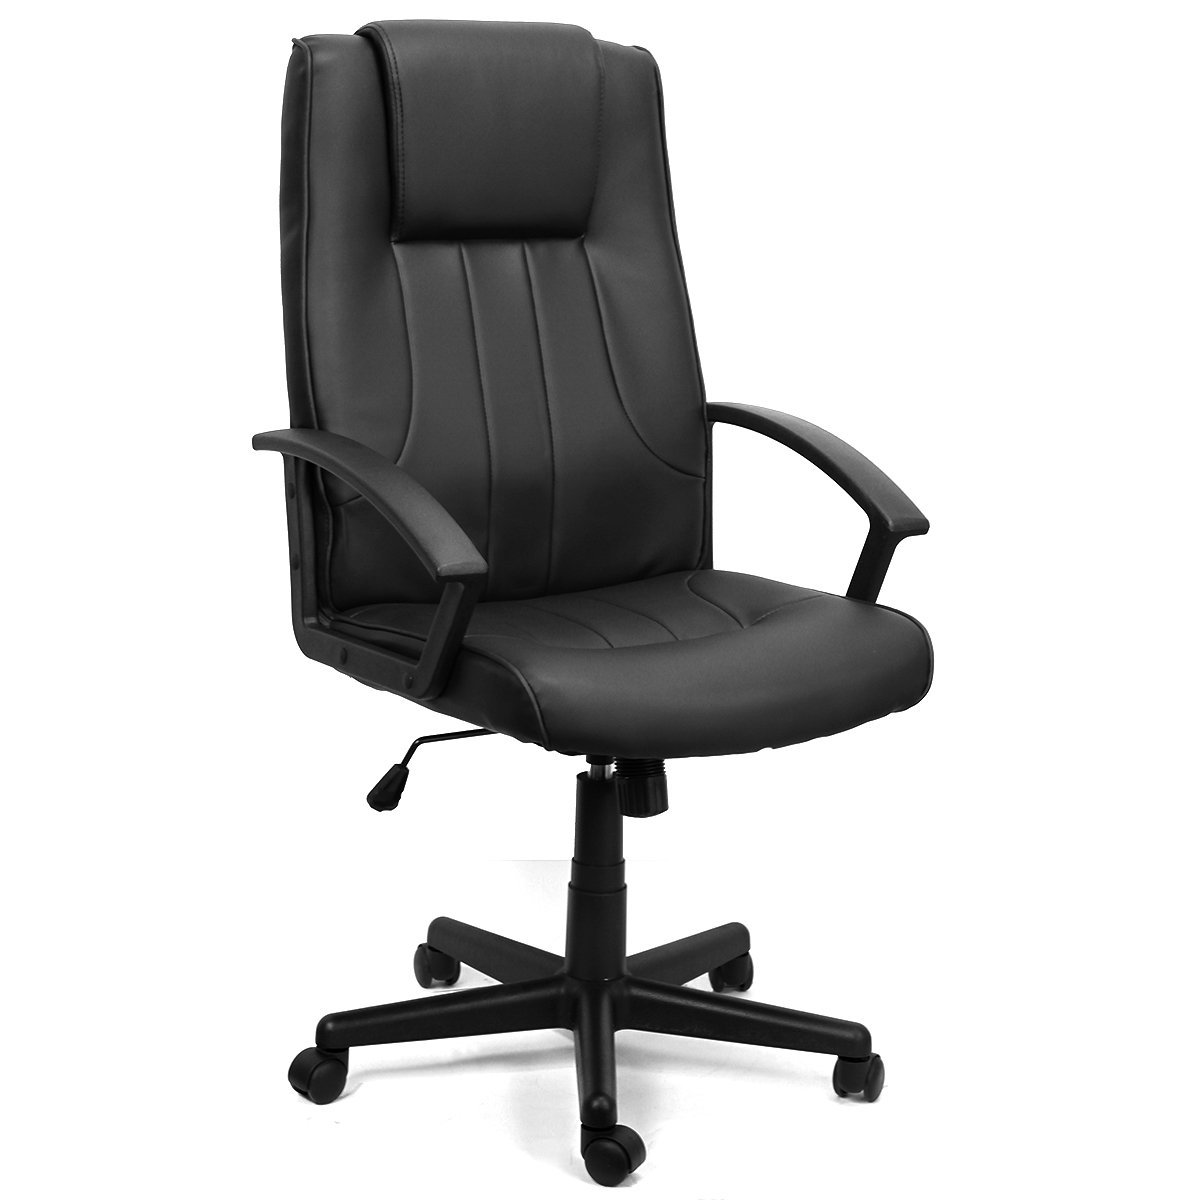 Most Ergonomic Office Chair Lobi Space Ergonomic Desk Chairs There S Power In Comfort